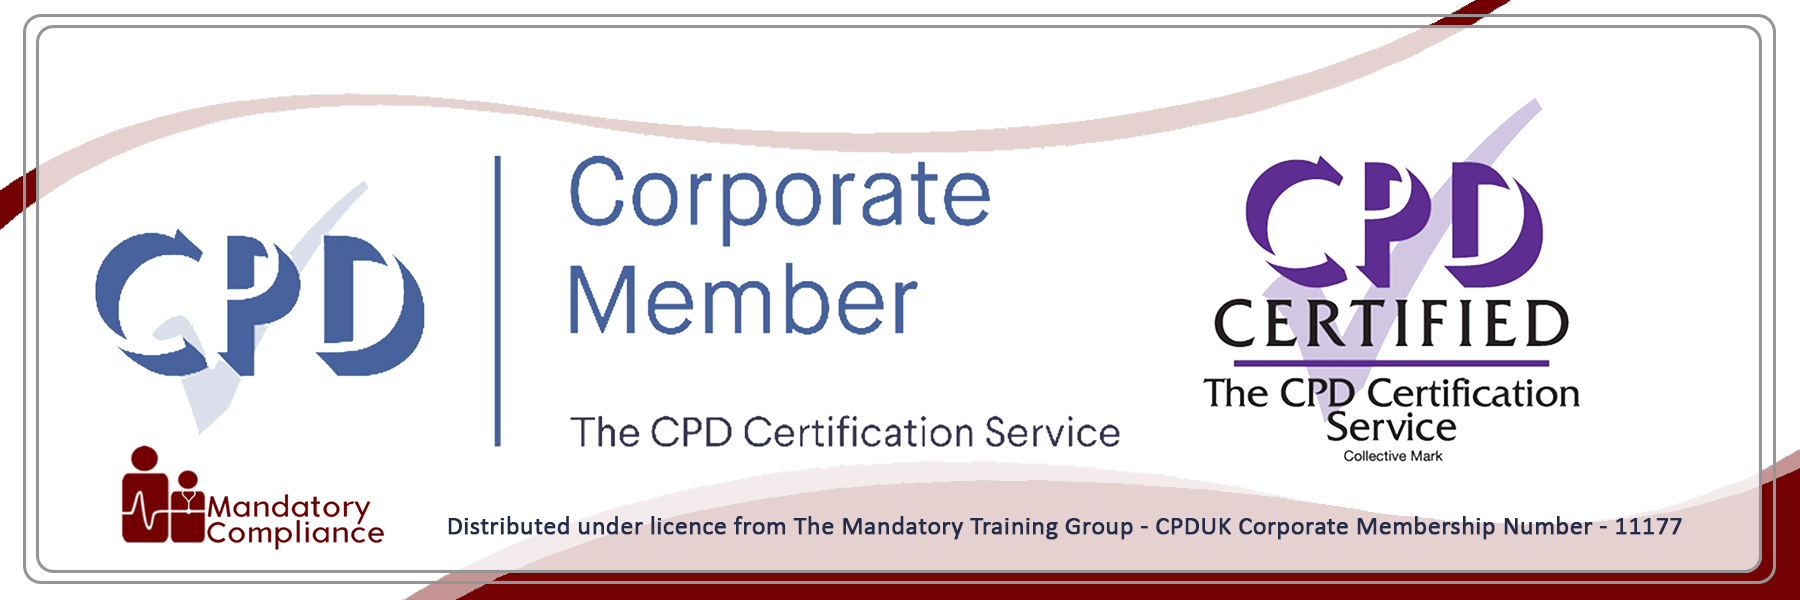 Personal Branding Training - Online Training Course - CPD Accredited - Mandatory Compliance UK -